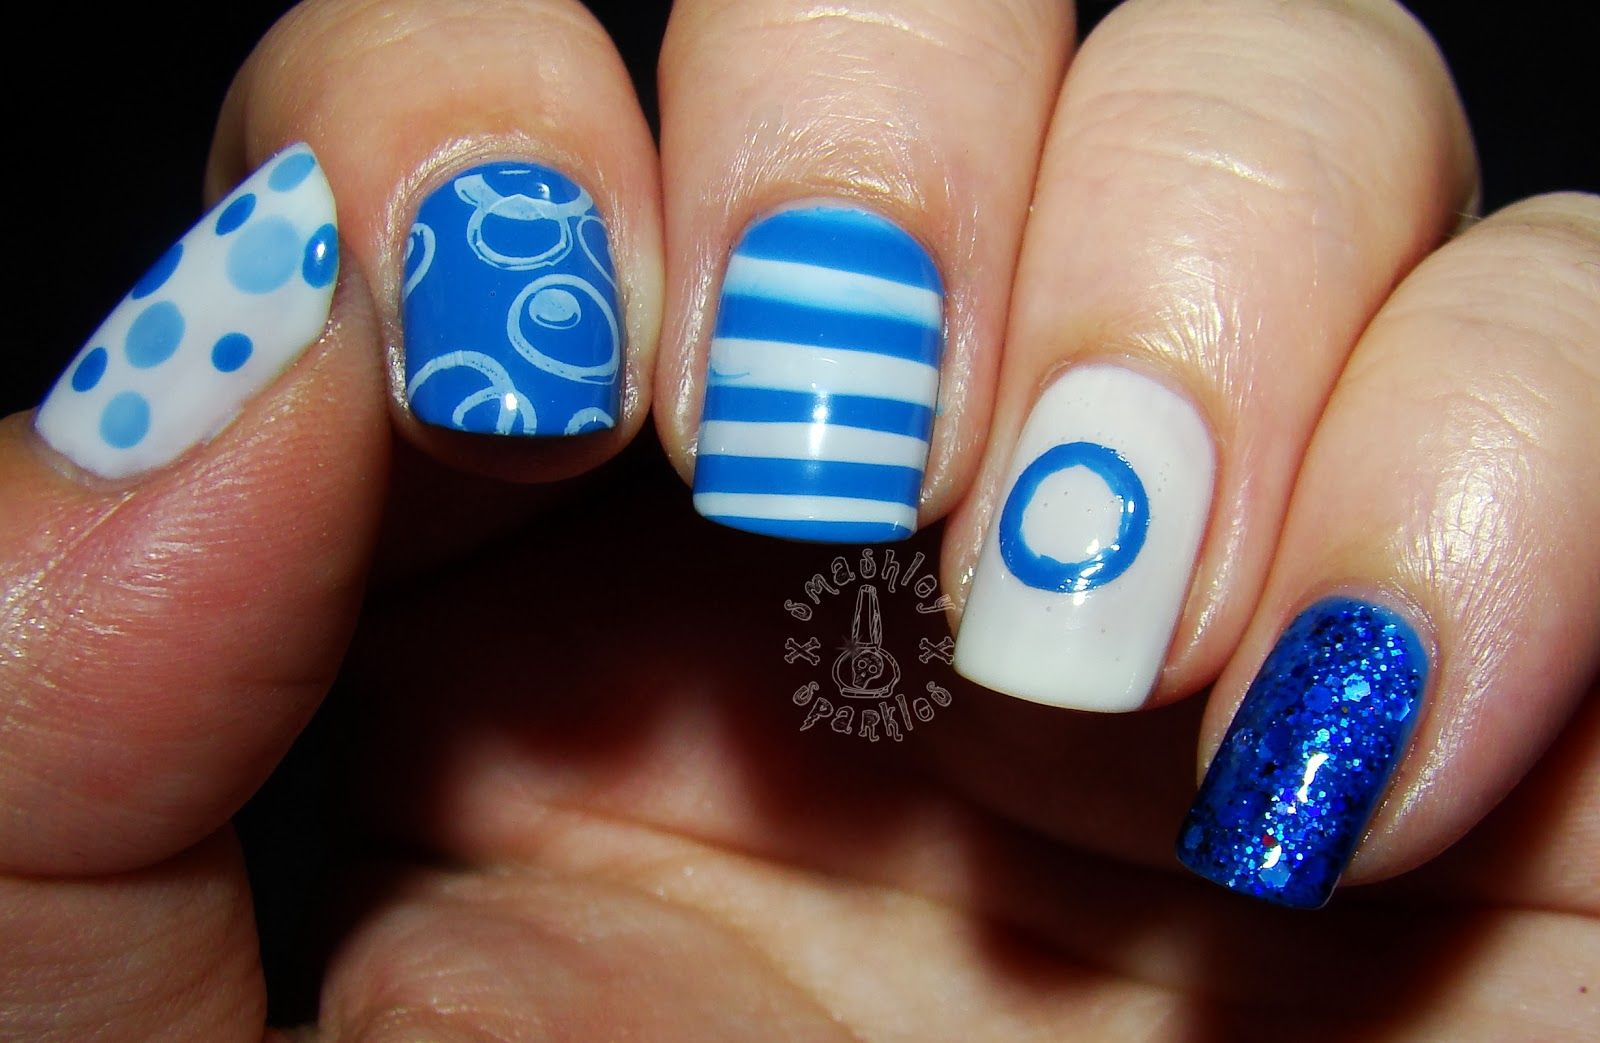 40+ New Trend and Fashion Acrylic Nails Ideas for 2020